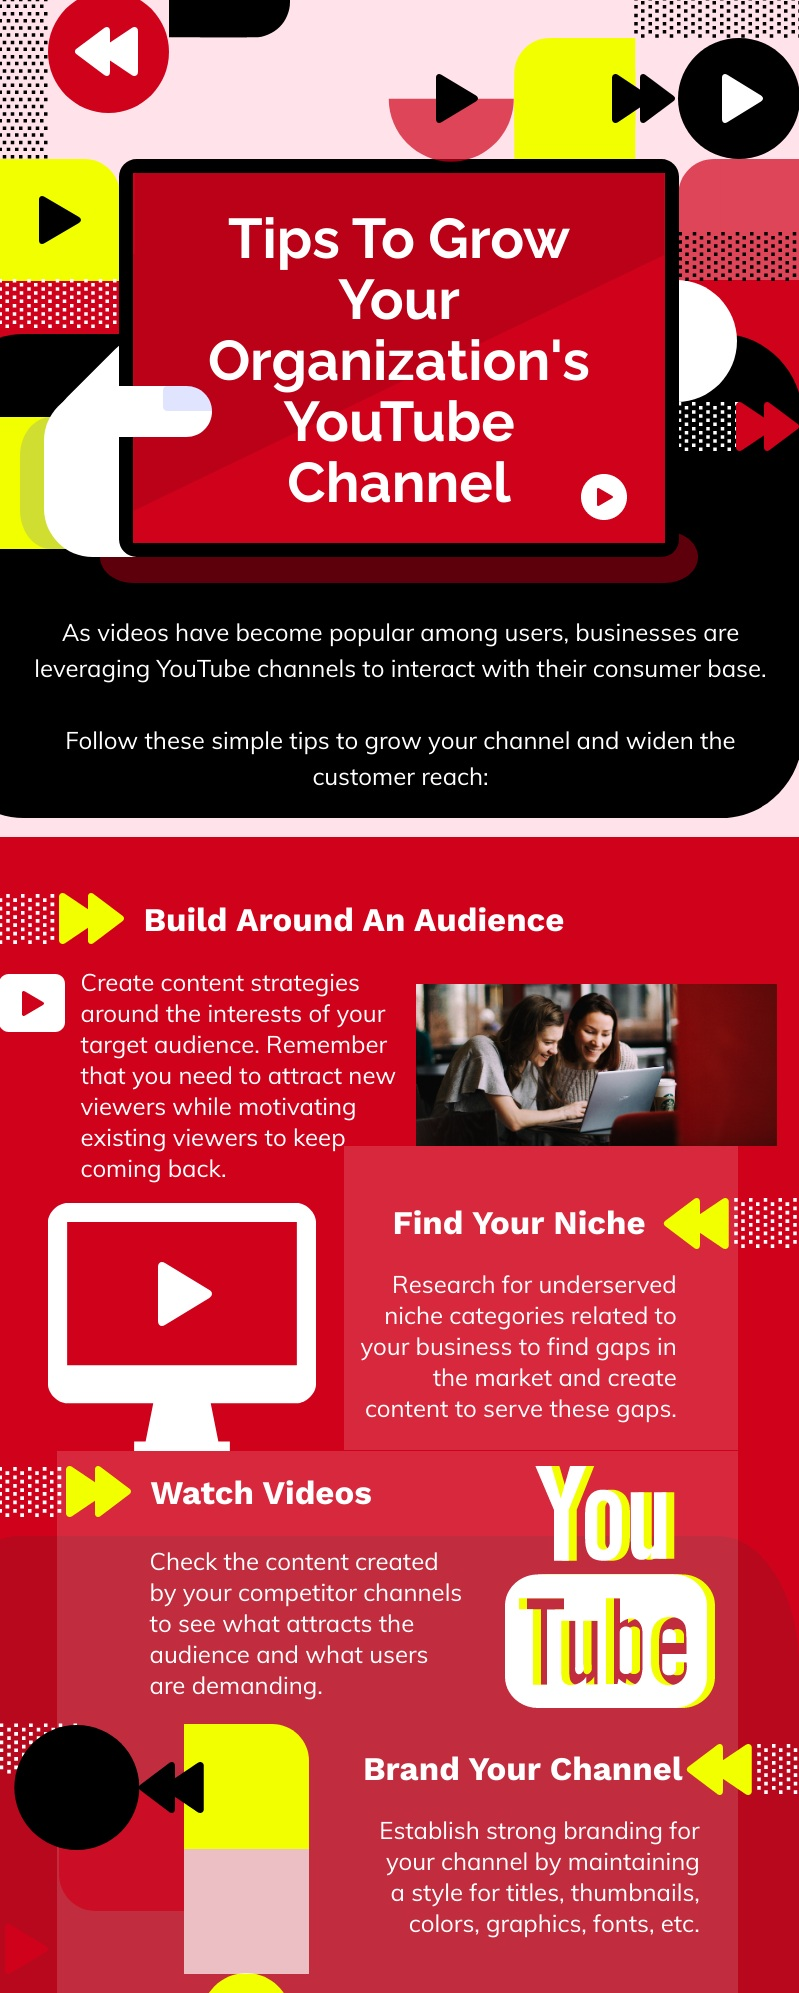 Tips-To-Grow-Your-Organizations-YouTube-Channel